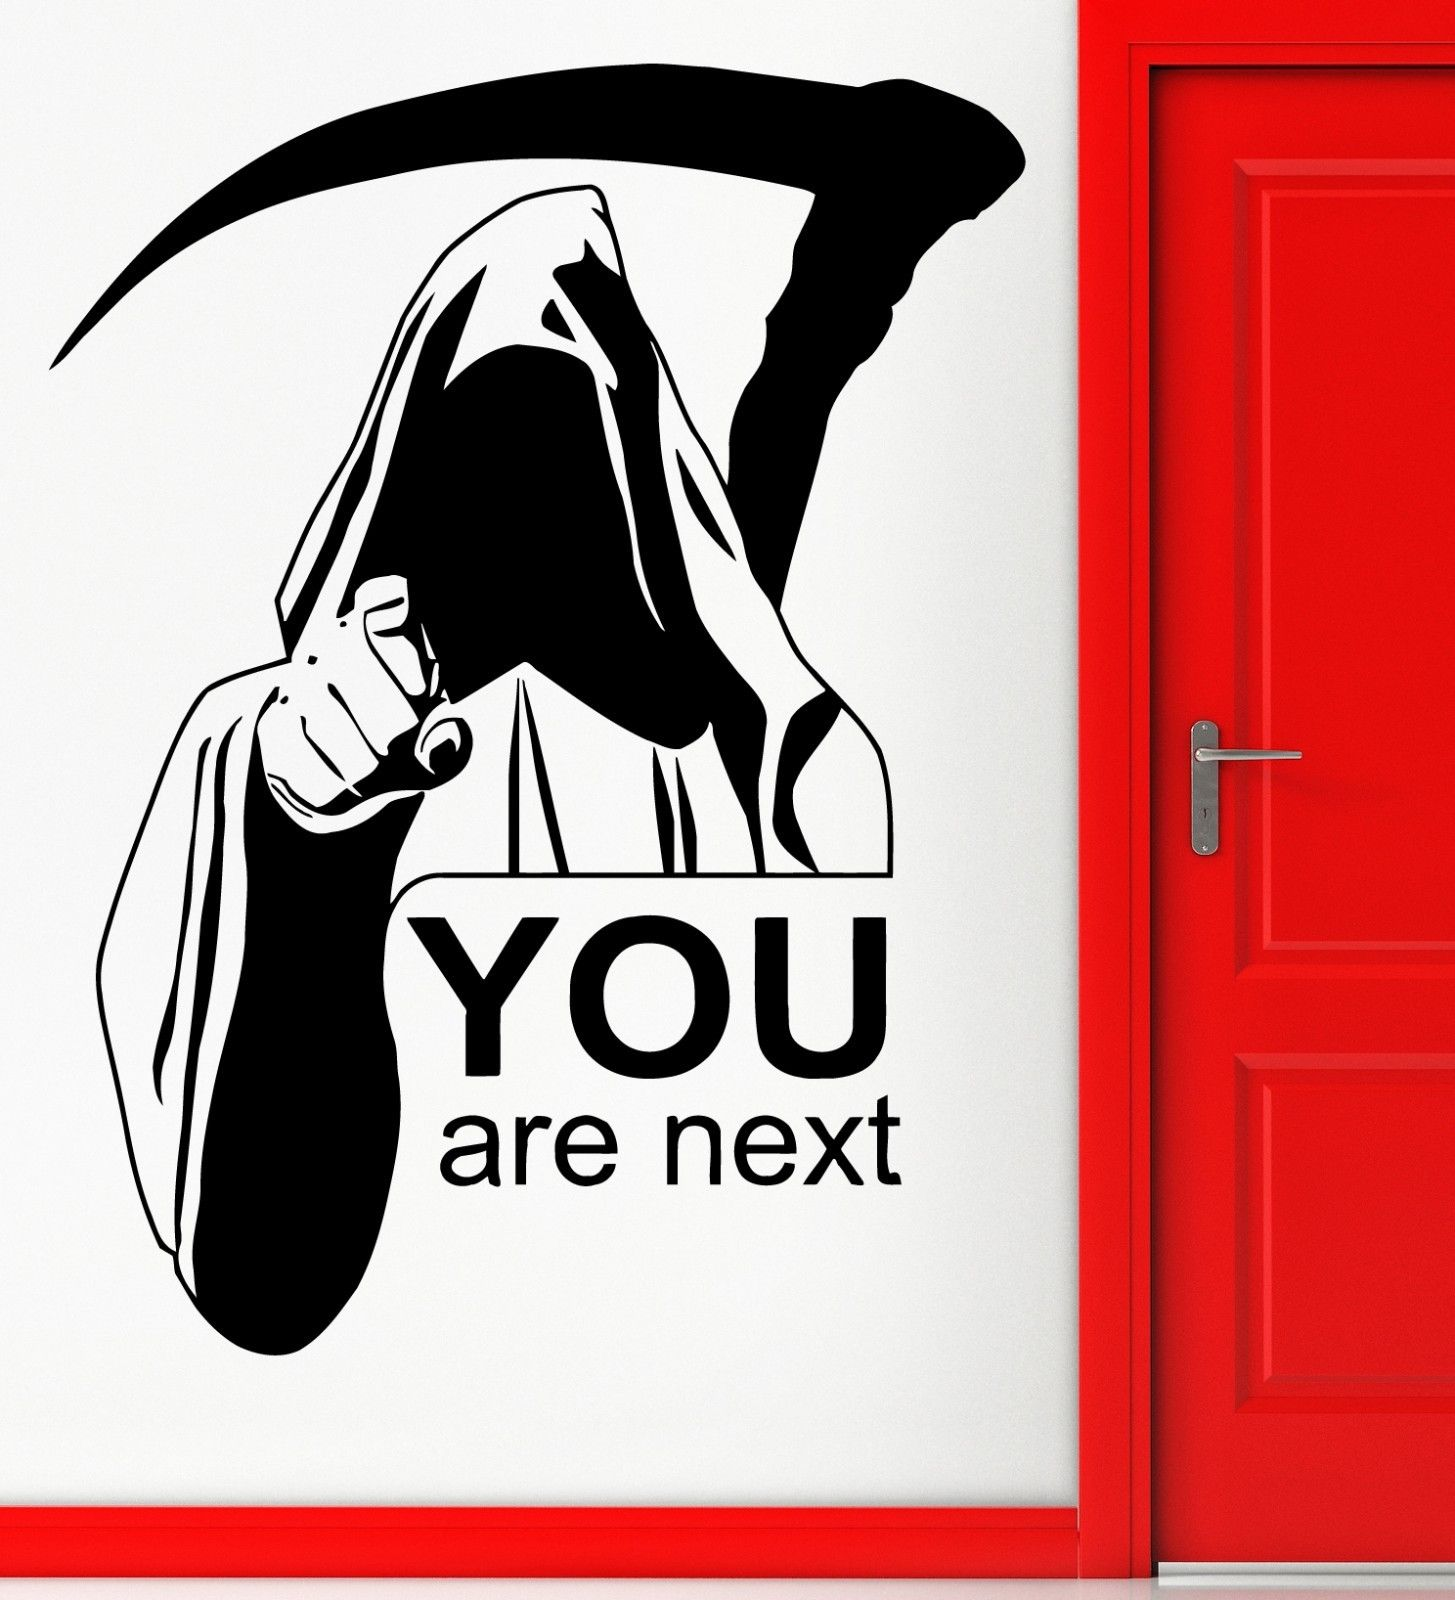 Us 602 33 Offnew Wall Stickers Vinyl Decal Death Quote You Are Next Funny Scary Decor Free Shipping In Wall Stickers From Home Garden On